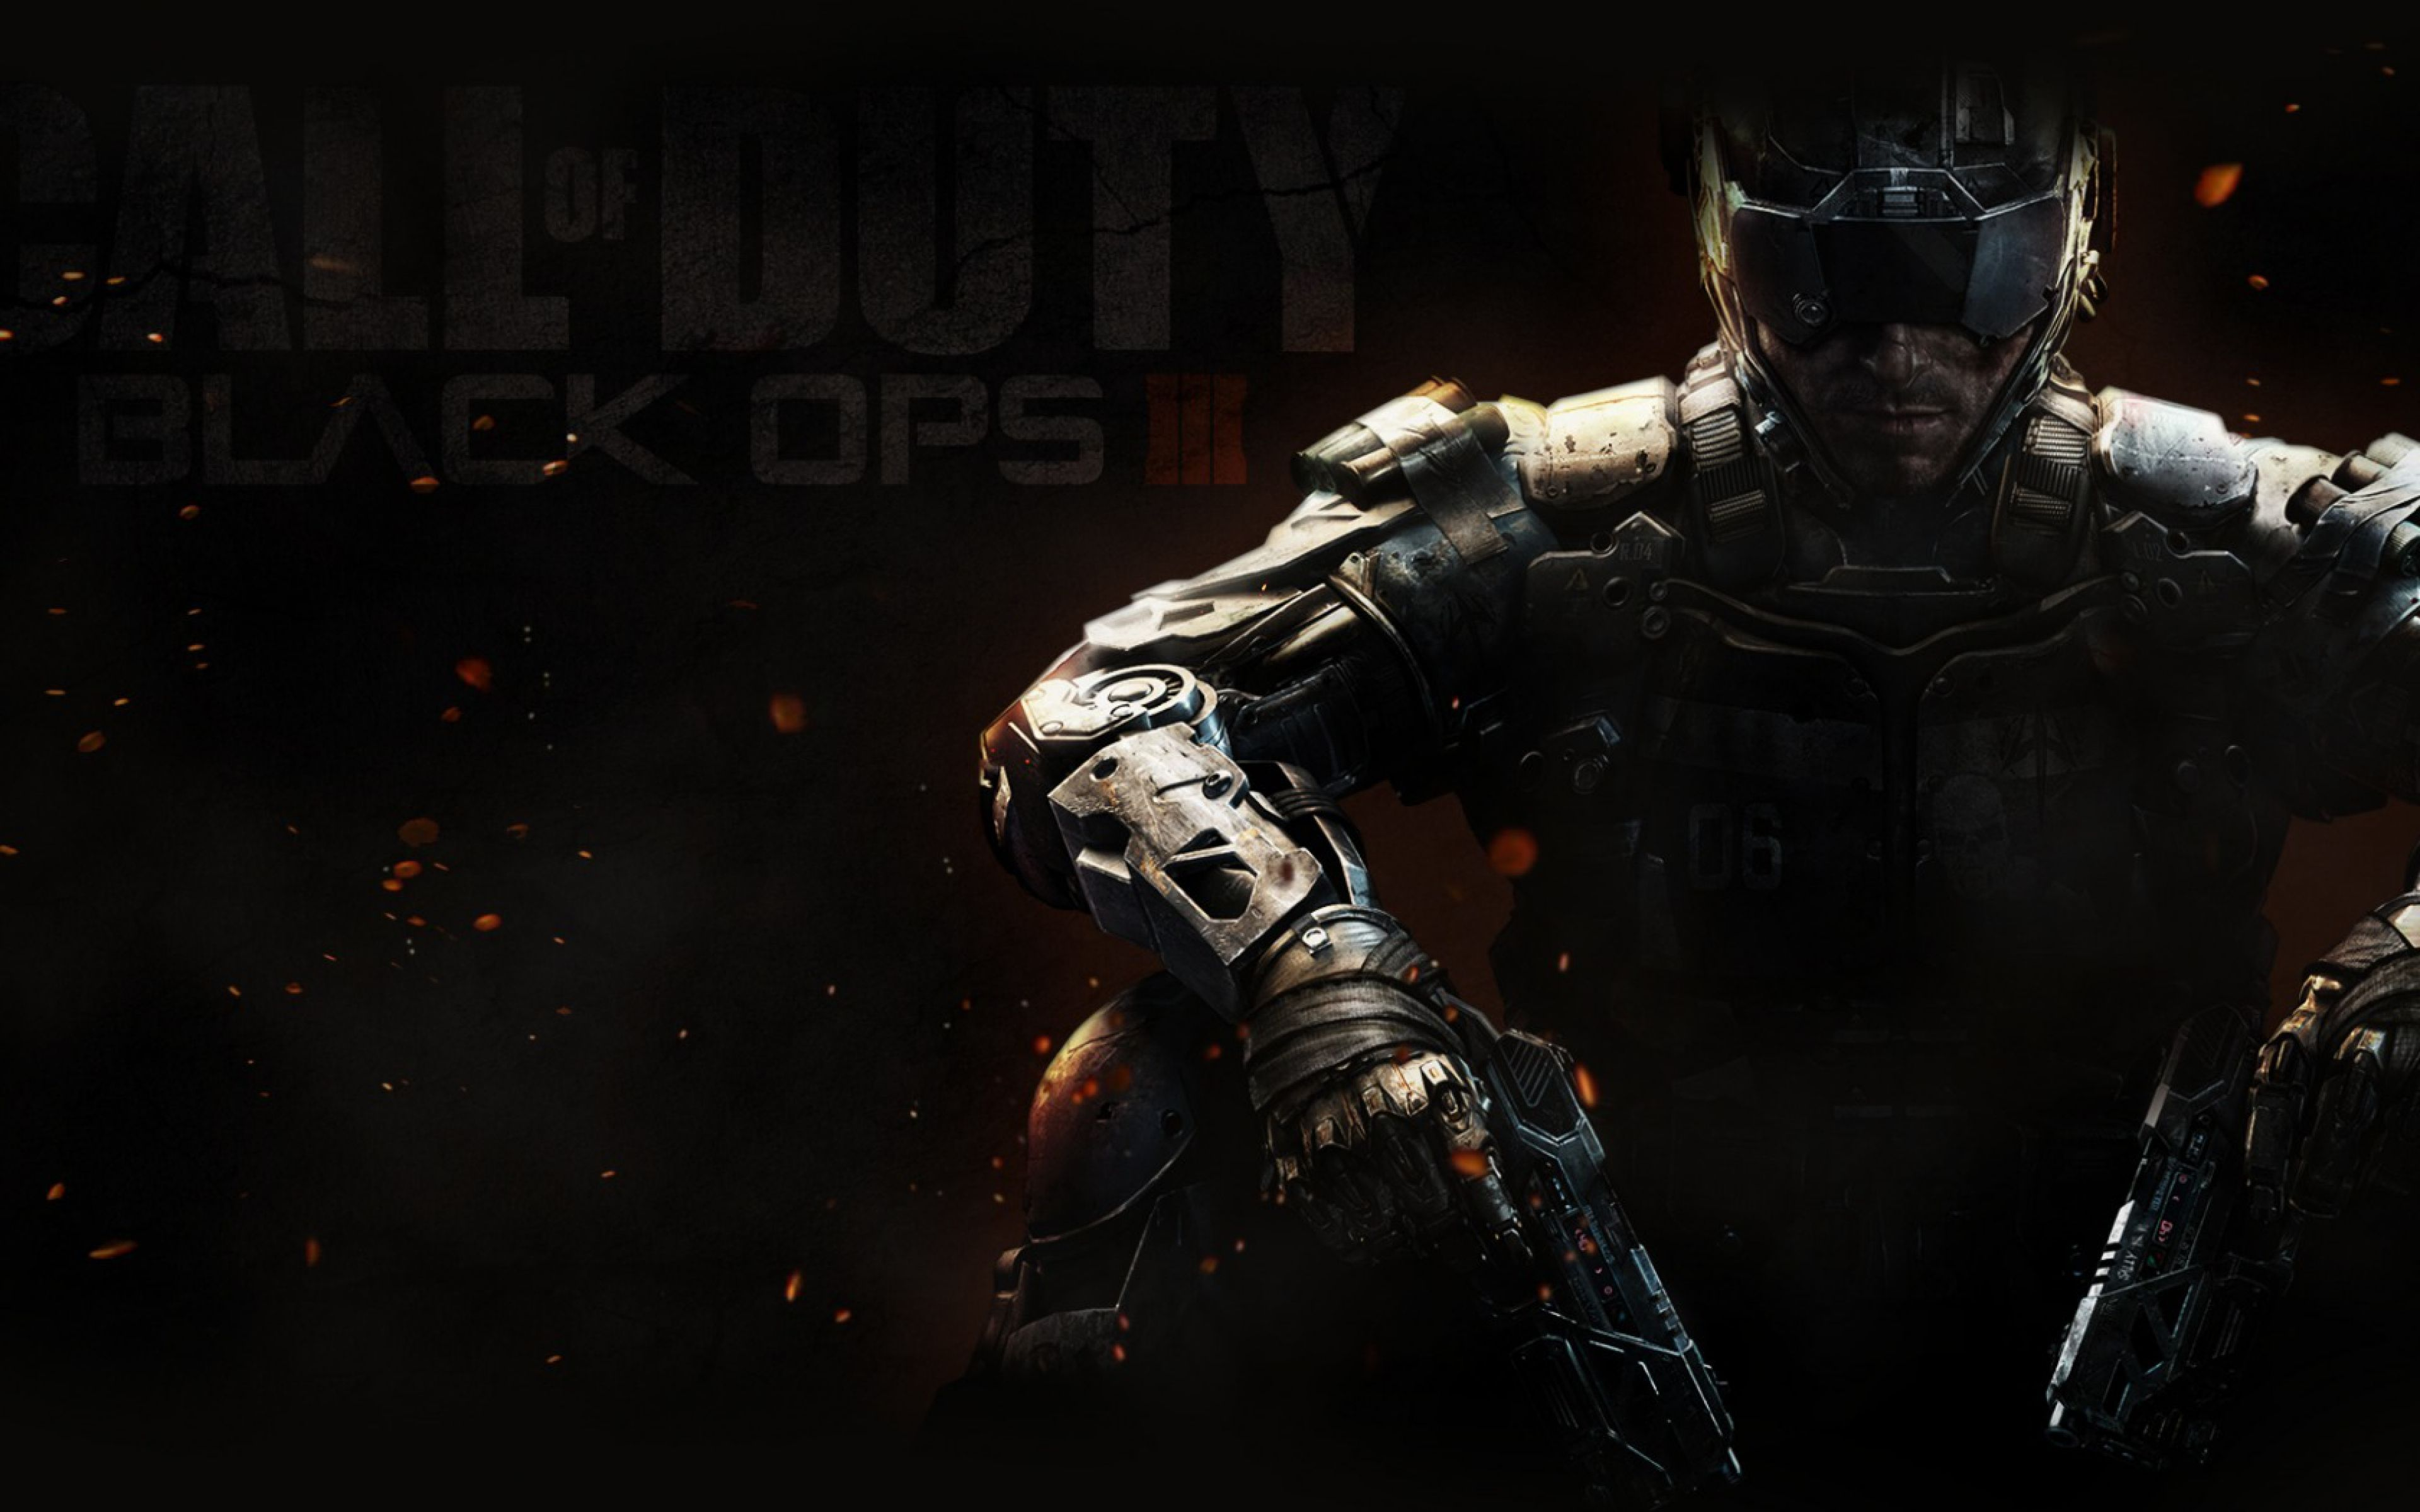 Call Of Duty Black Ops 3 693593 Full Hd Widescreen Wallpapers